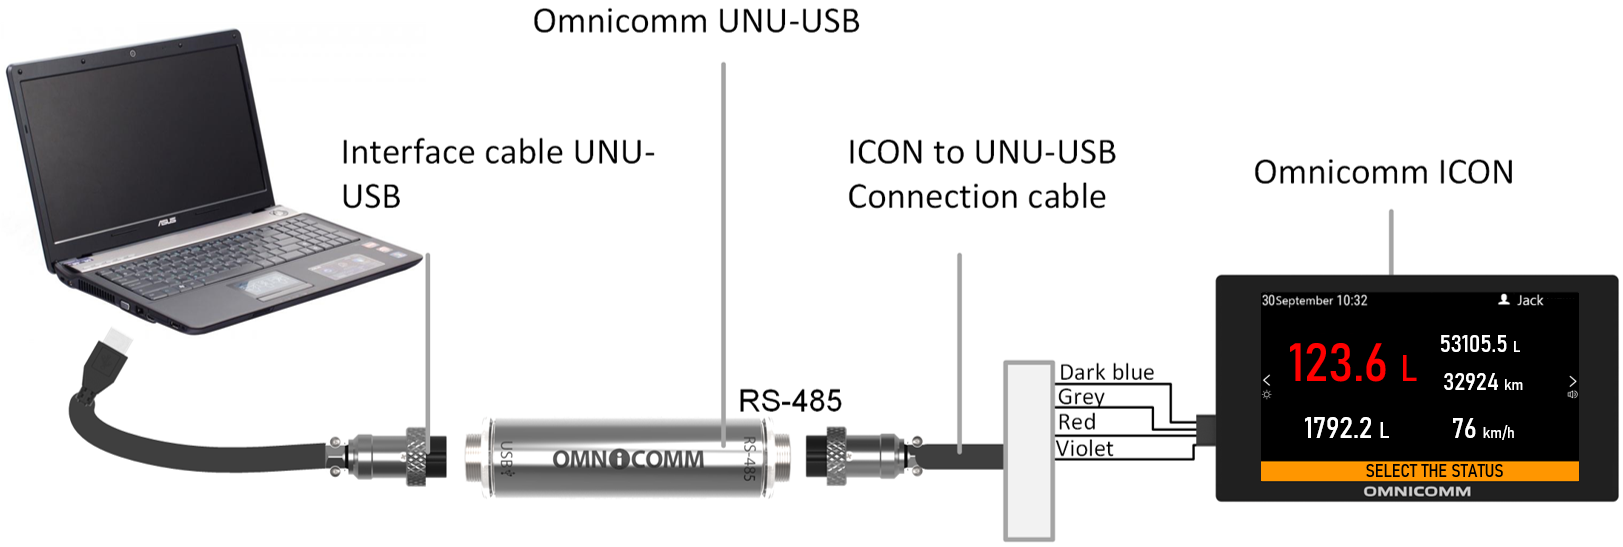 The Omnicomm ICON connection diagram to a PC